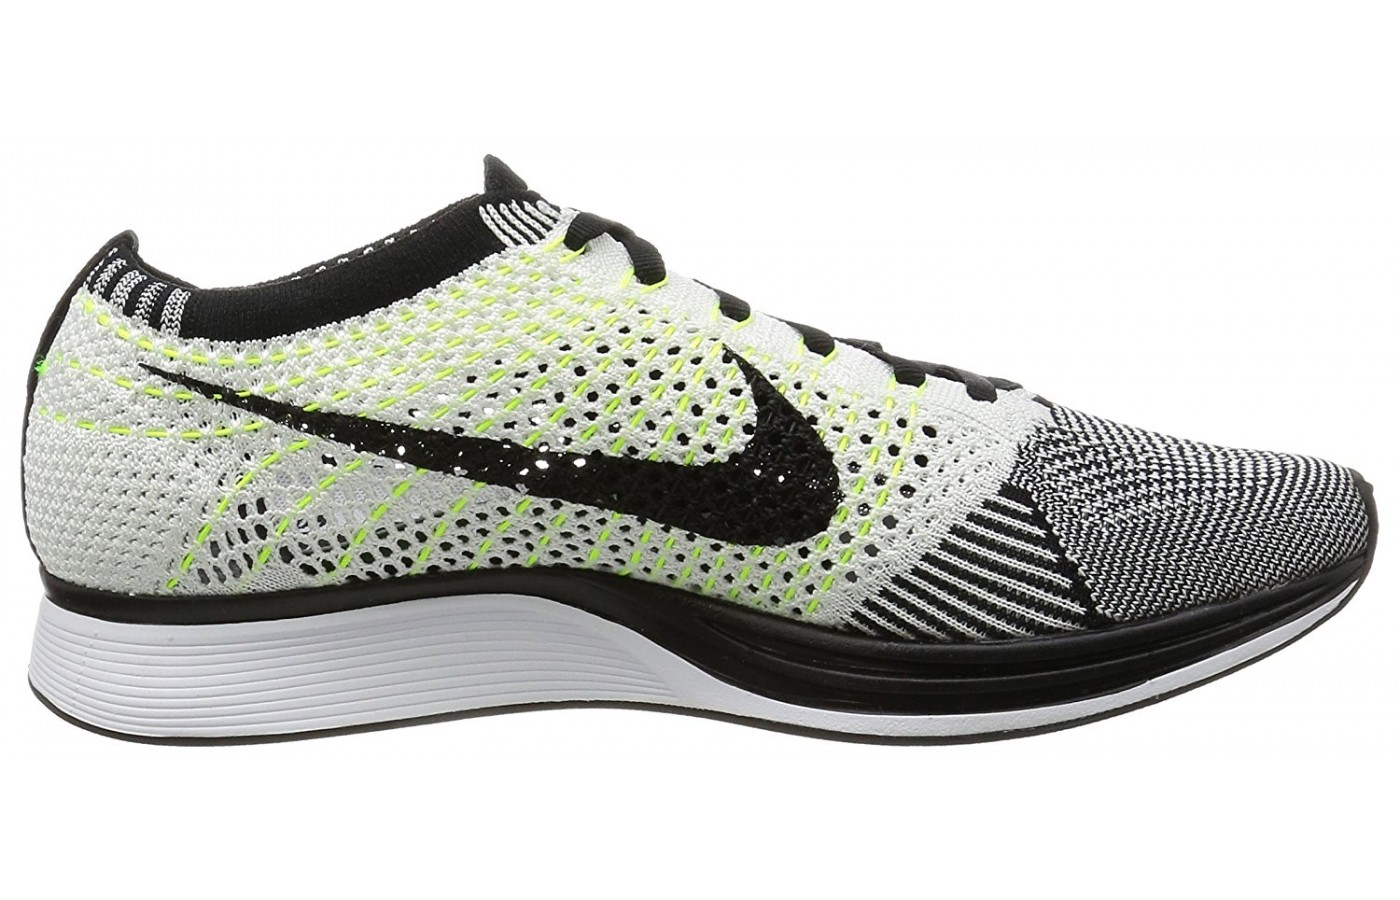 Side view of the Nike Flyknit Racer running shoe